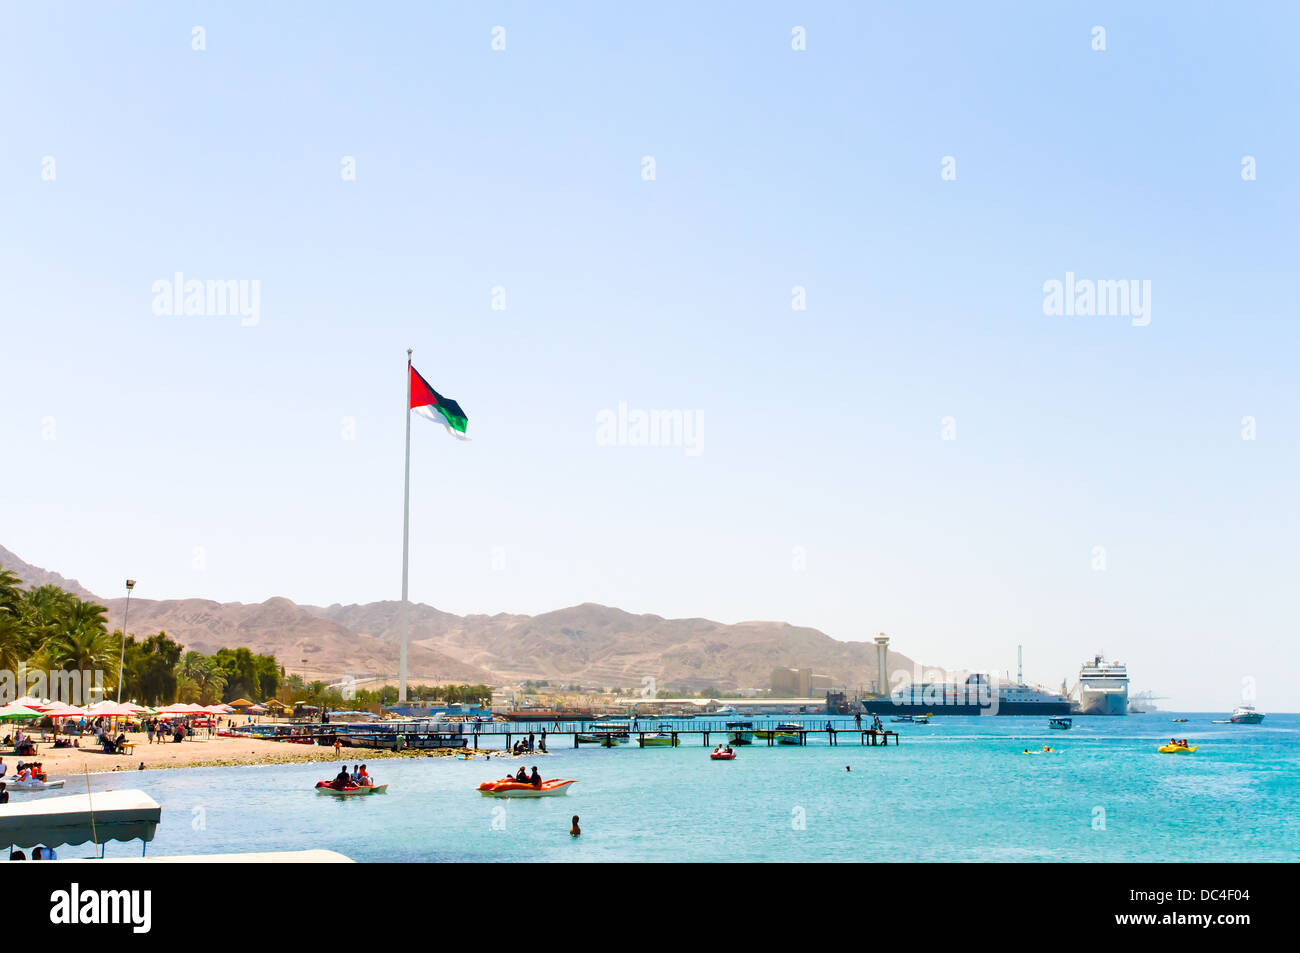 Huge flag on the public beach of Aqaba, Jordan - Stock Image